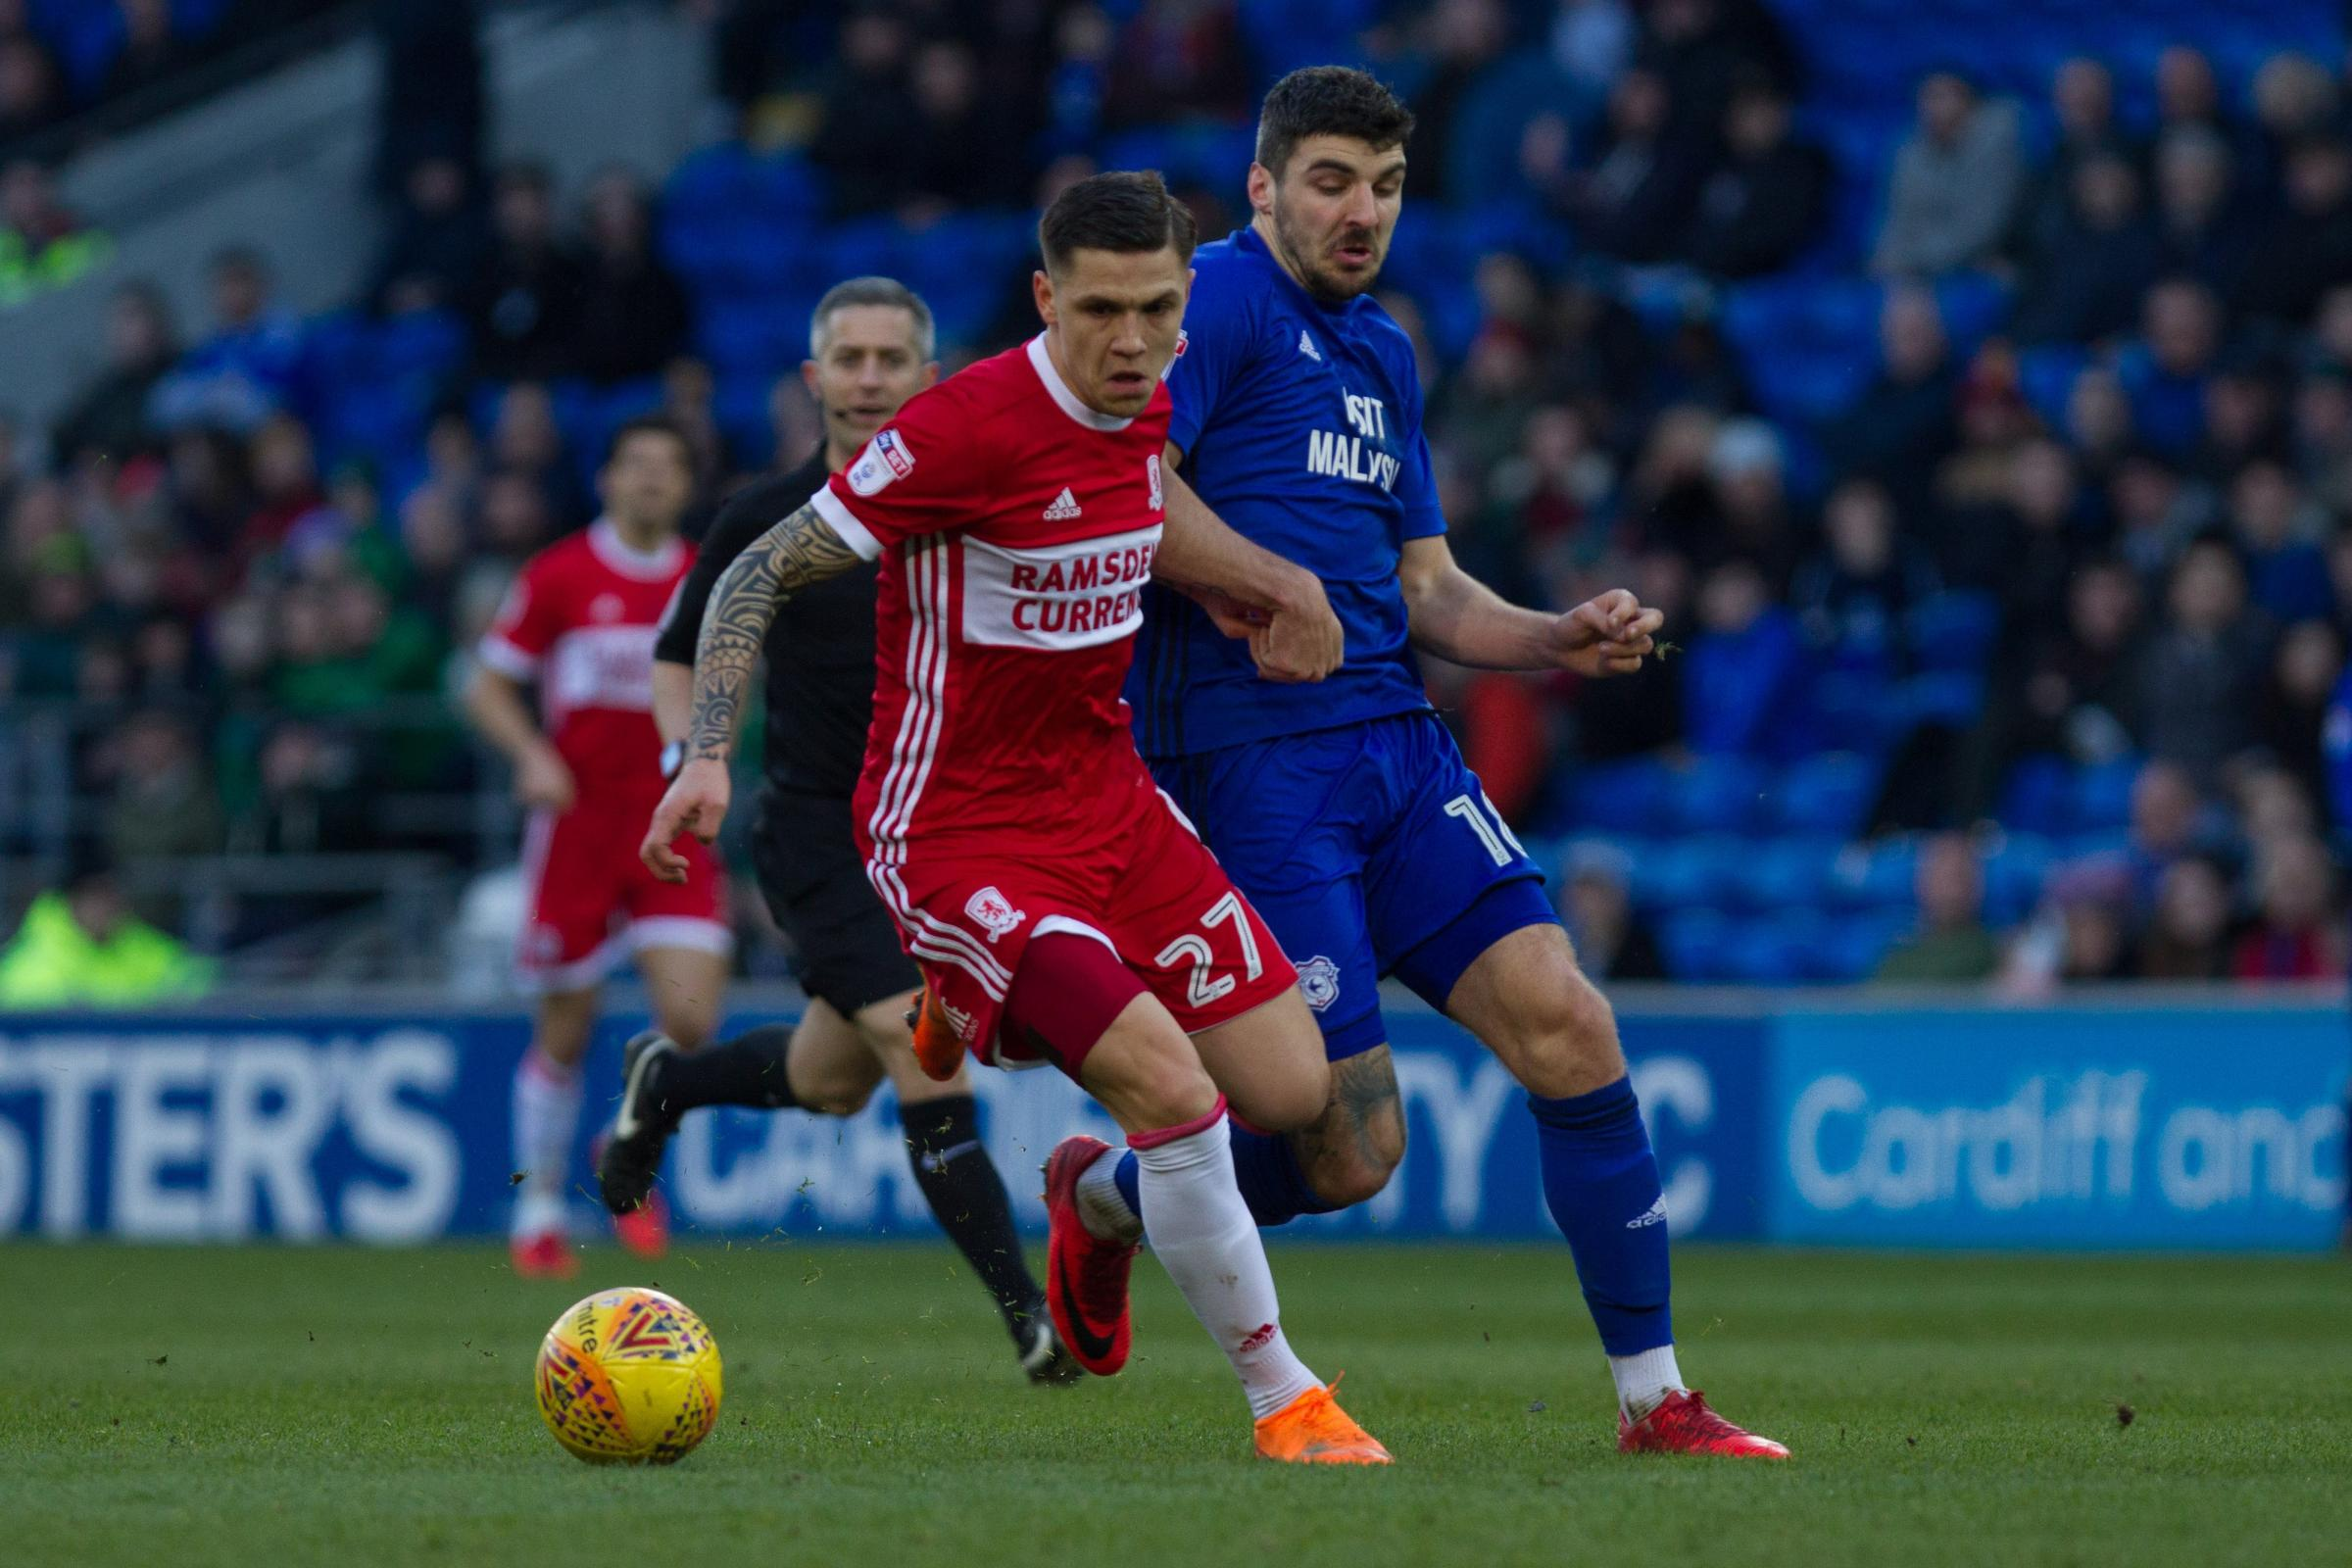 HEADING BACK: Middlesbrough are hoping to re-sign Everton midfielder Mo Besic on loan